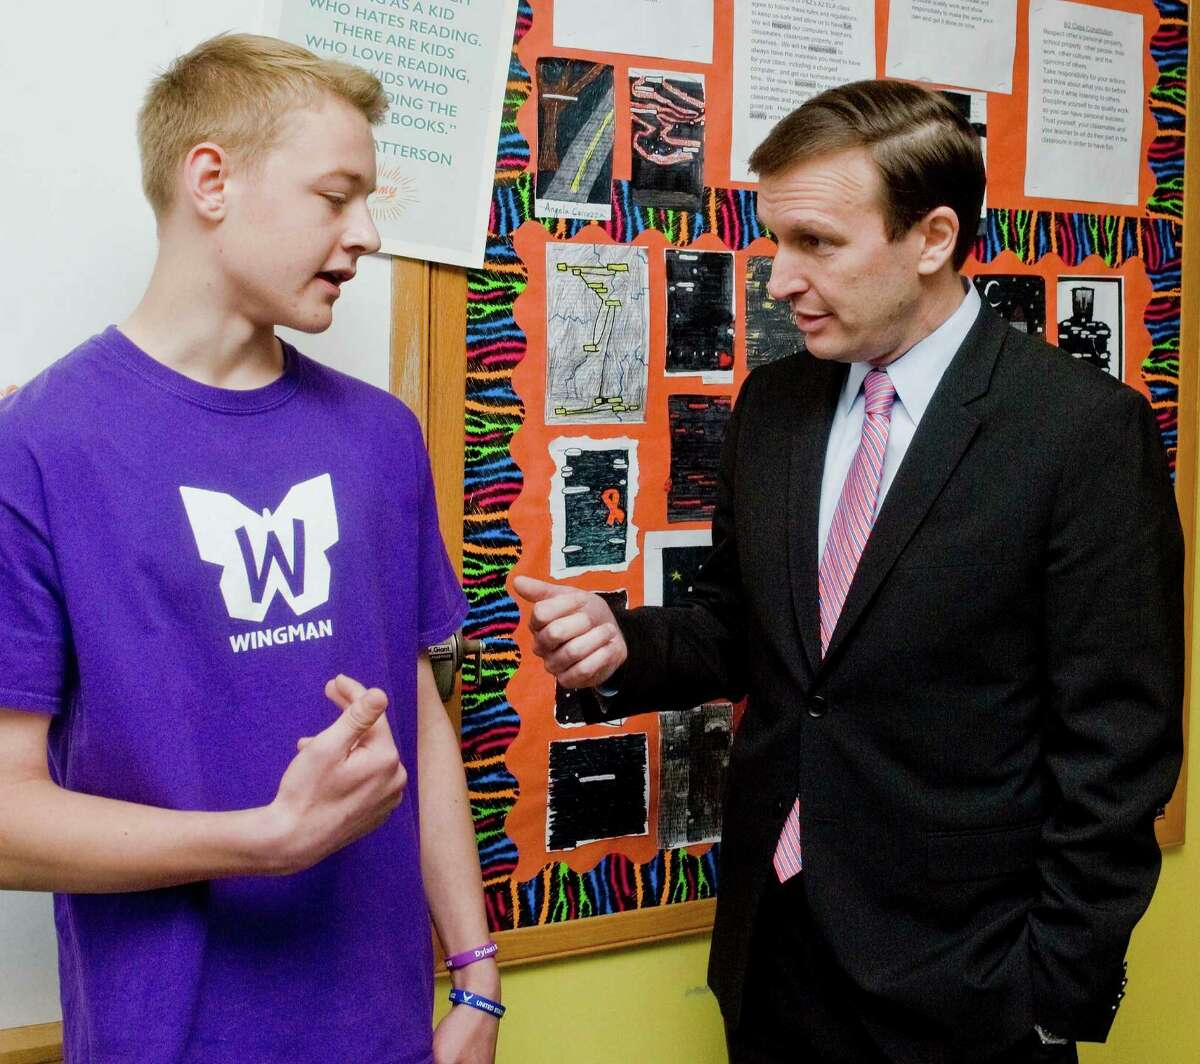 Wilson Brawley, eigth-grade, explains the classroom activities of the Wingman program to Senator Chris Murphy as he visited New Fairfield Middle School for the culmination of their Wingman program, a student-led leadership program founded by Sandy Hook parents, Ian and Nicole Hockley, in memory of their son Dylan. Friday, May 6, 2016